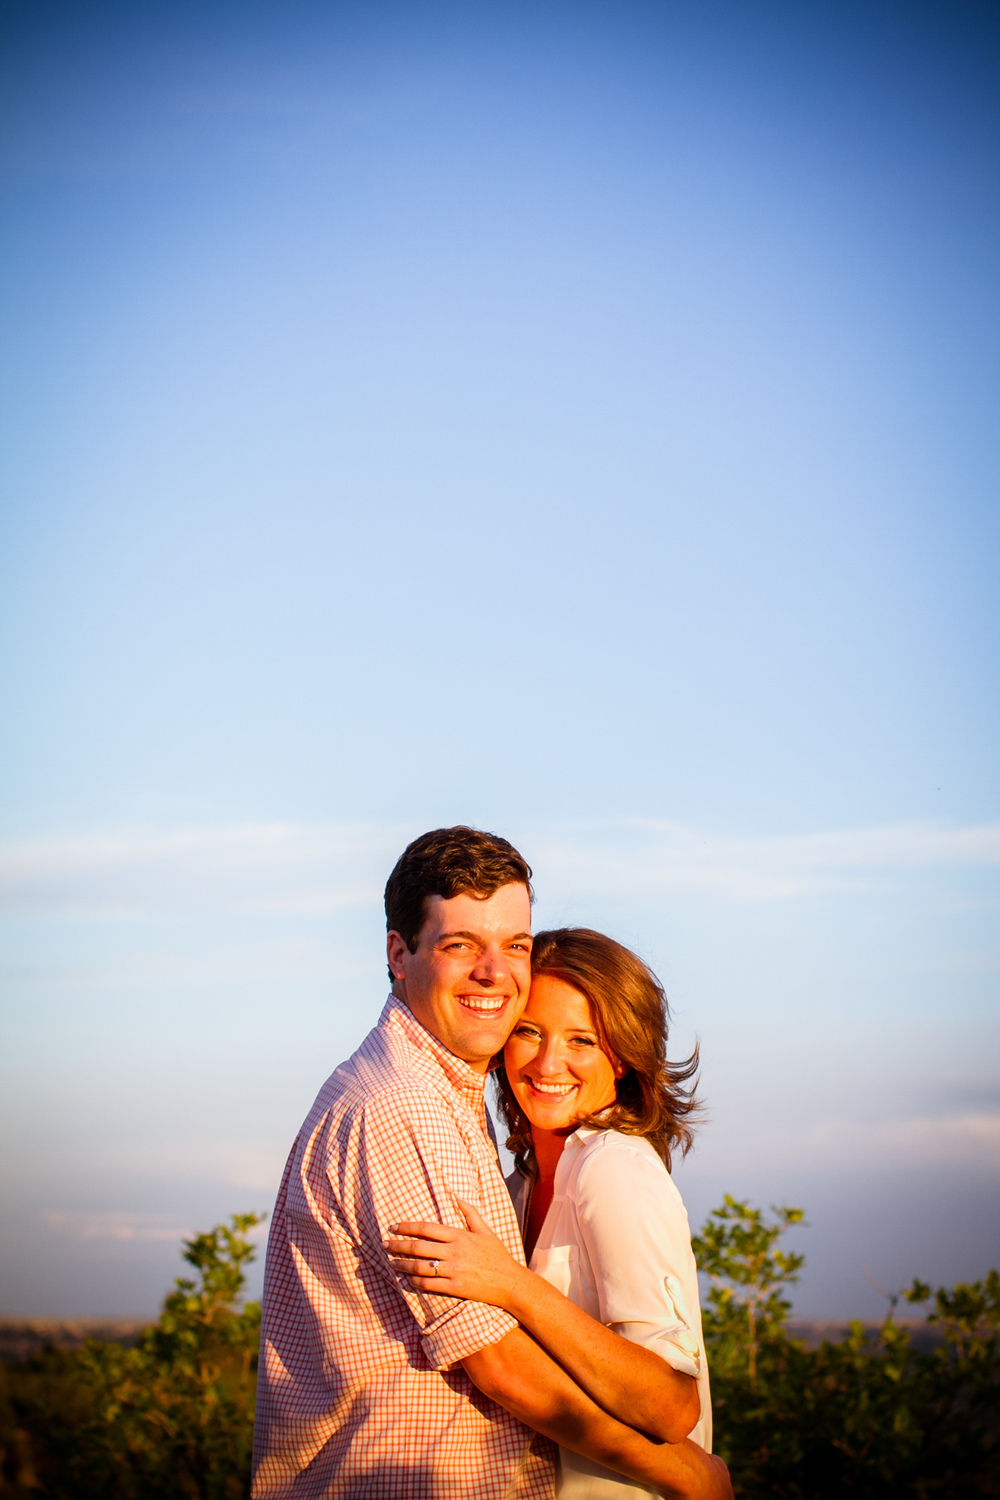 Castle_Pines_Colorado'_Engagement_Photos_020.JPG